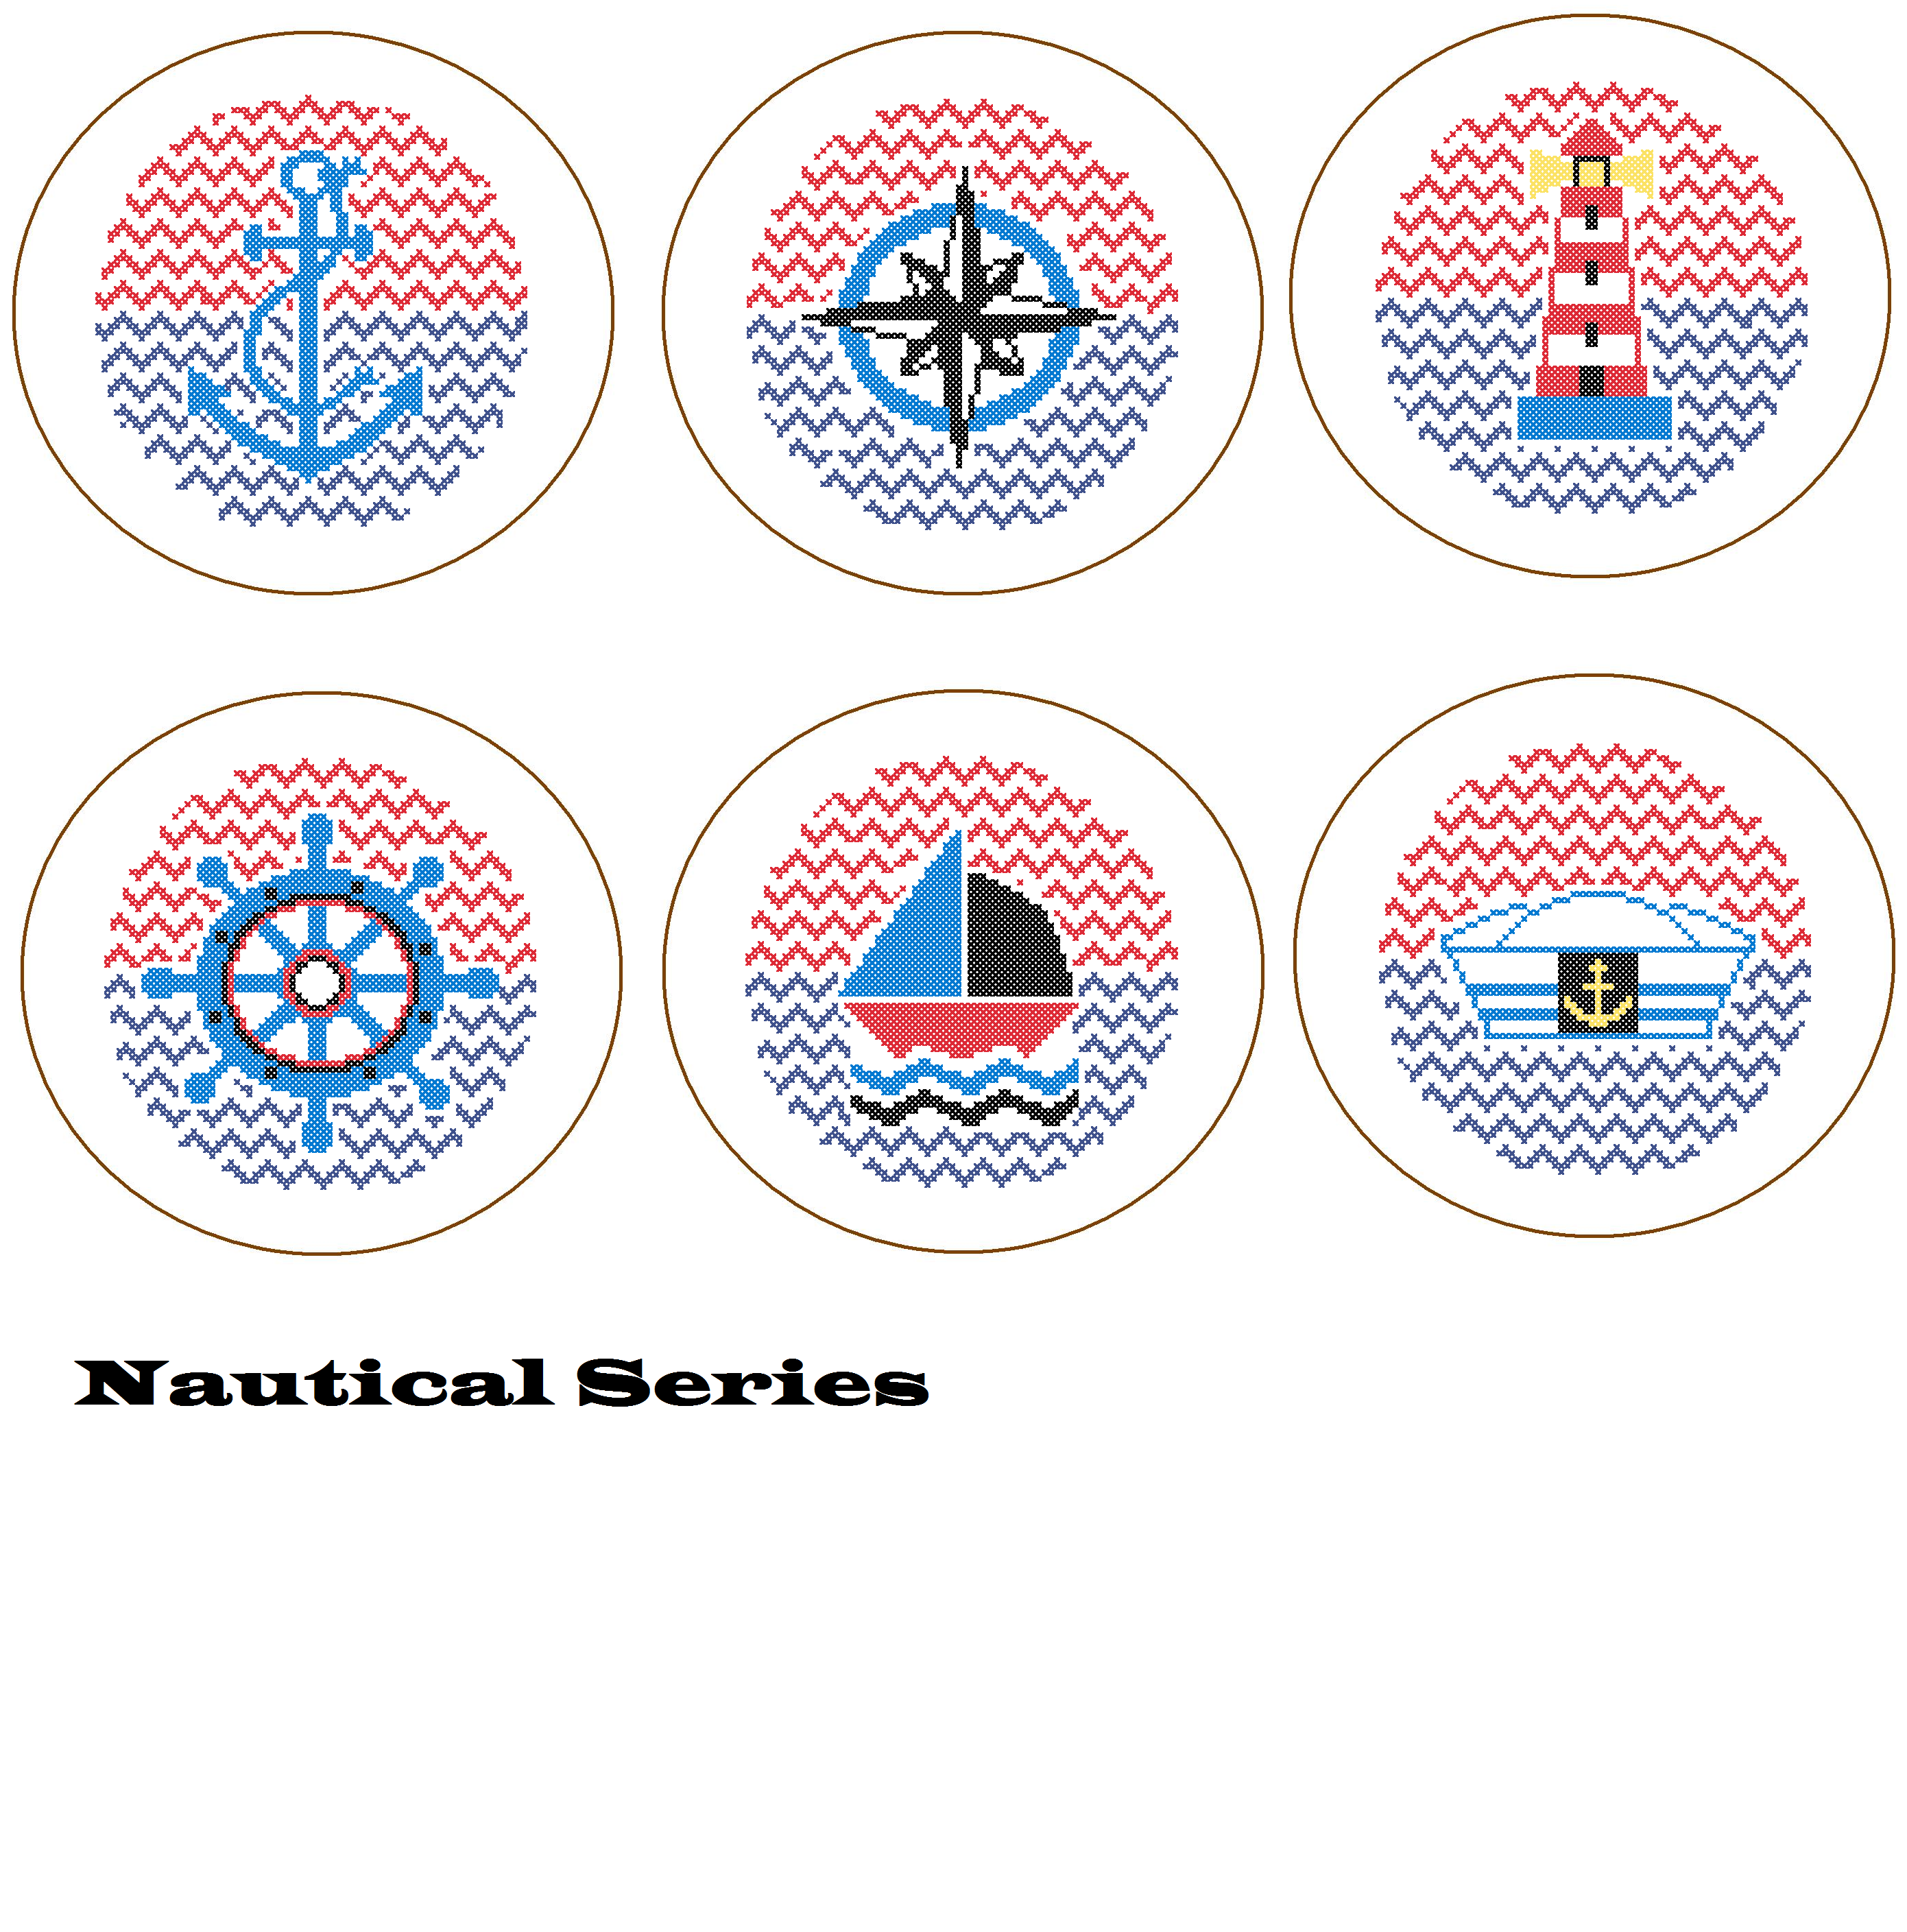 Nautical embroidery designs free makaroka instant download nautical compass cross stitch pattern bankloansurffo Gallery